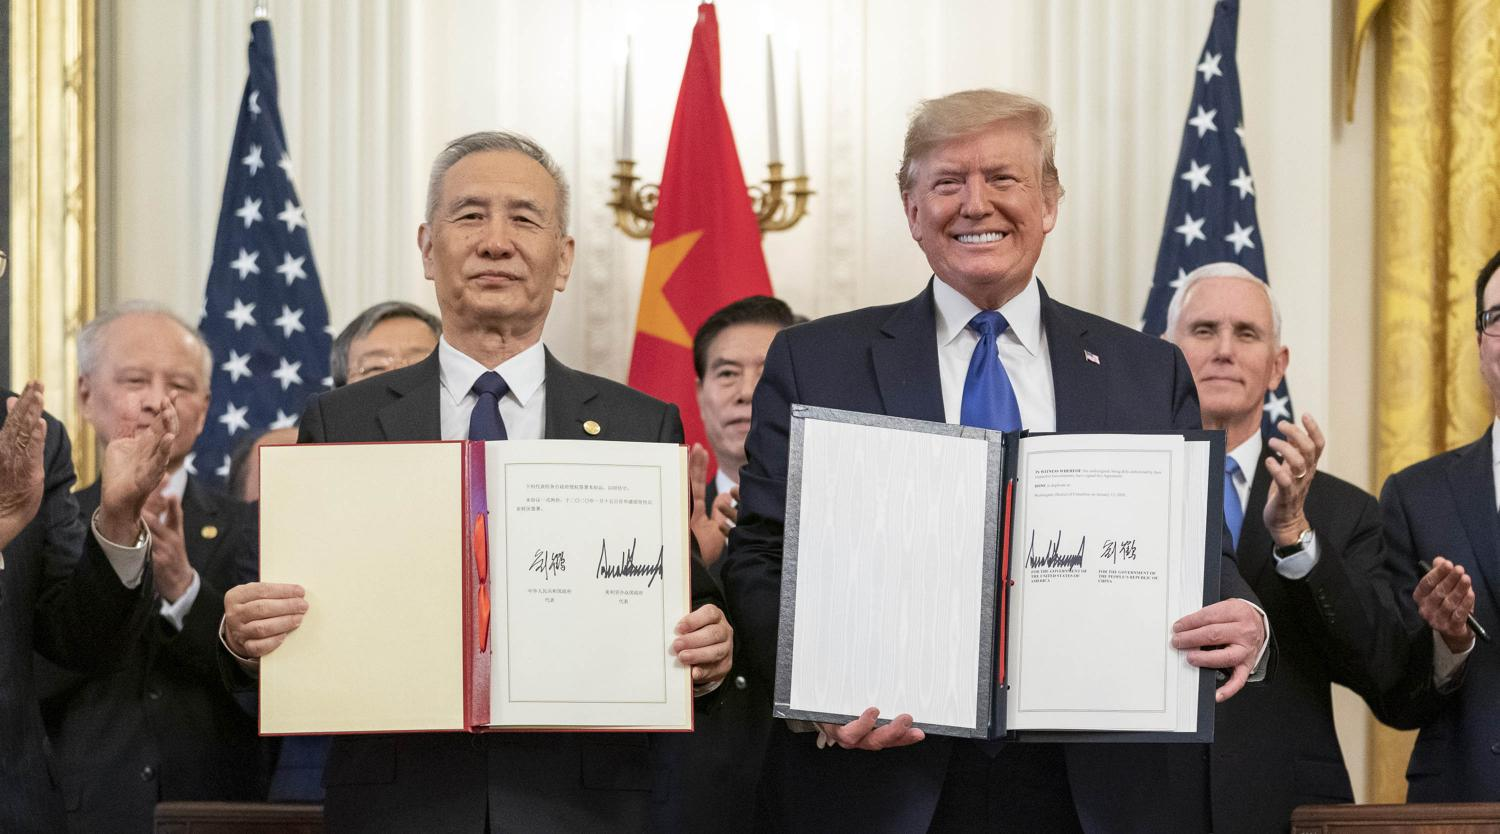 President Donald J. Trump, joined by Chinese Vice Premier Liu He, sign the U.S. China Phase One Trade Agreement Wednesday, Jan. 15, 2020, in the East Room of the White House.